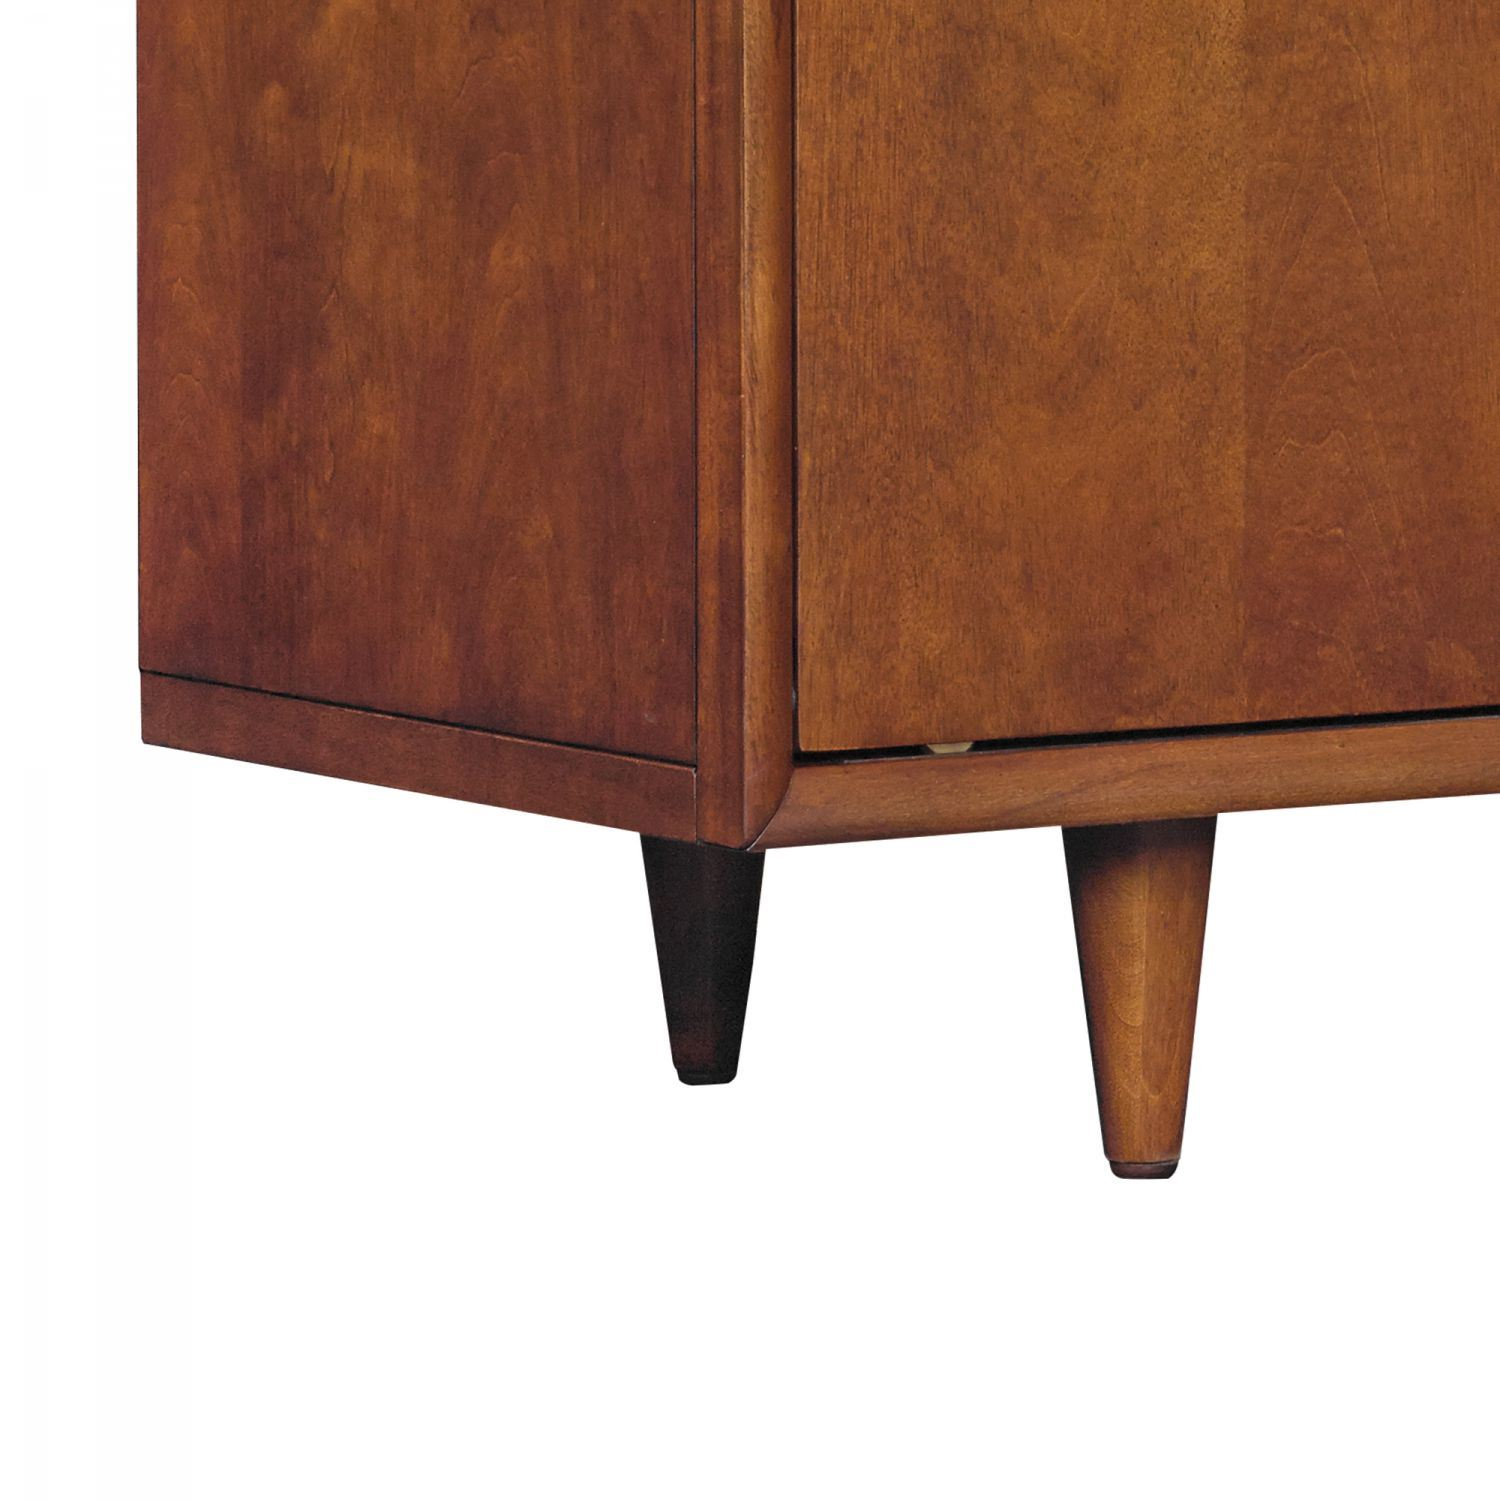 Picture of Fairgrove TV Stand for TVs up to 60 IN *D